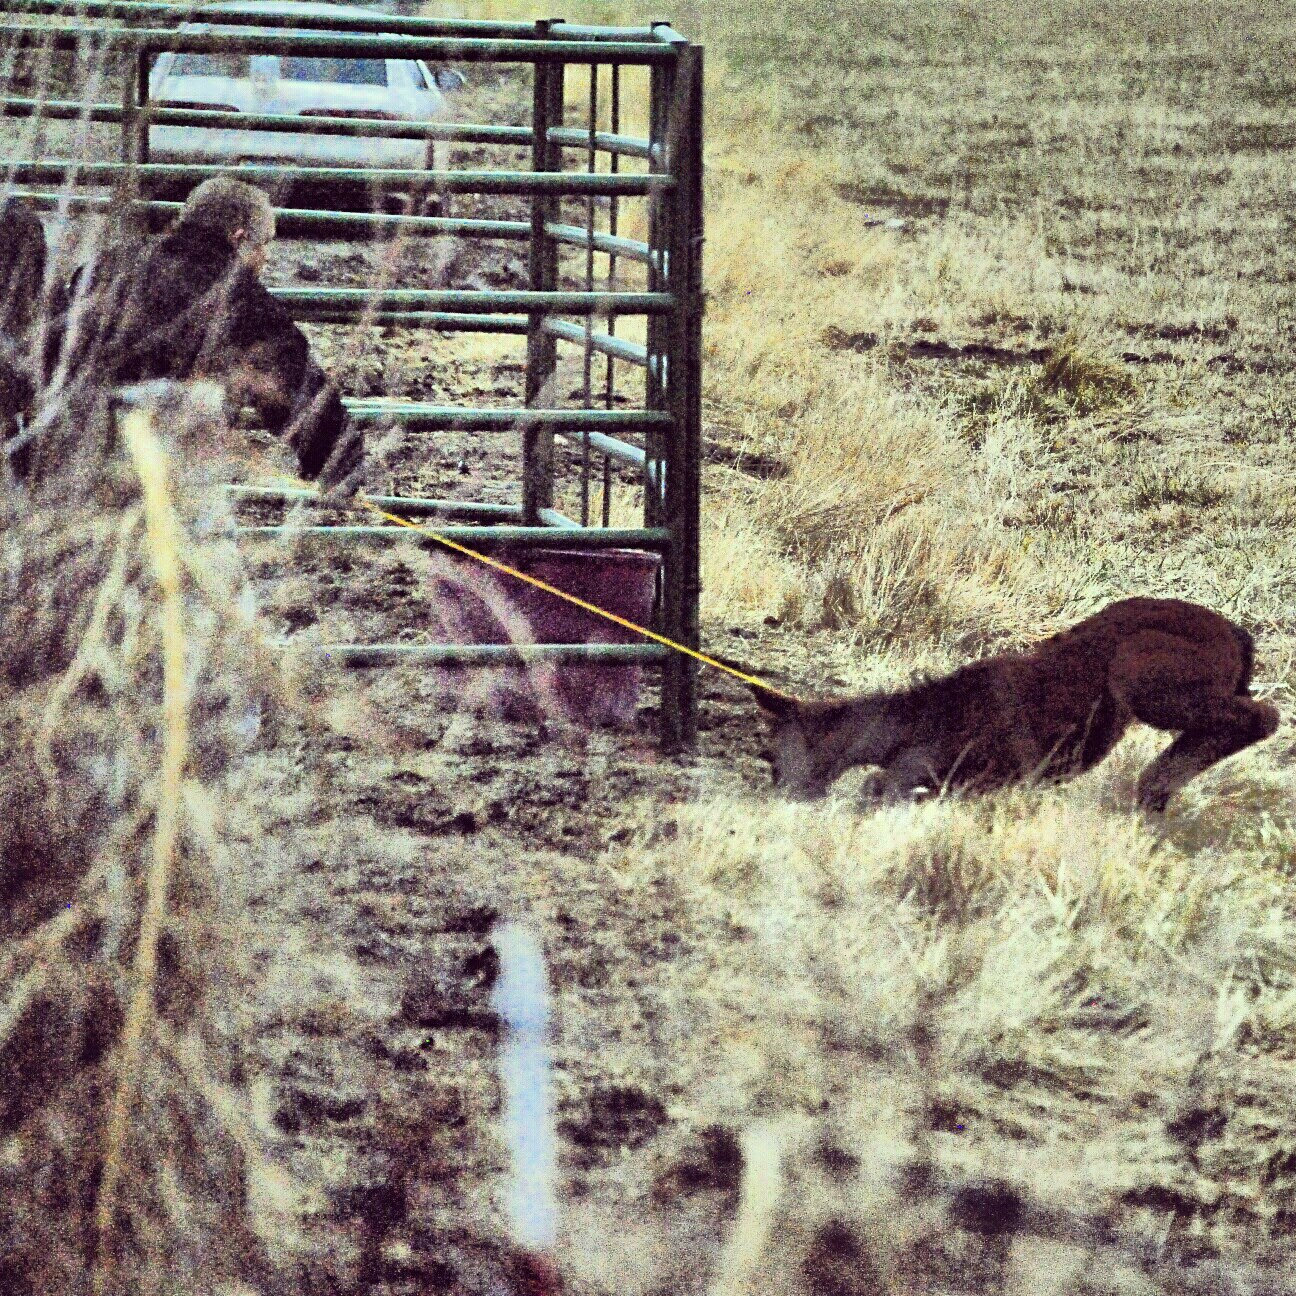 Reno: Damonte wild horses trapped w/ cruelty